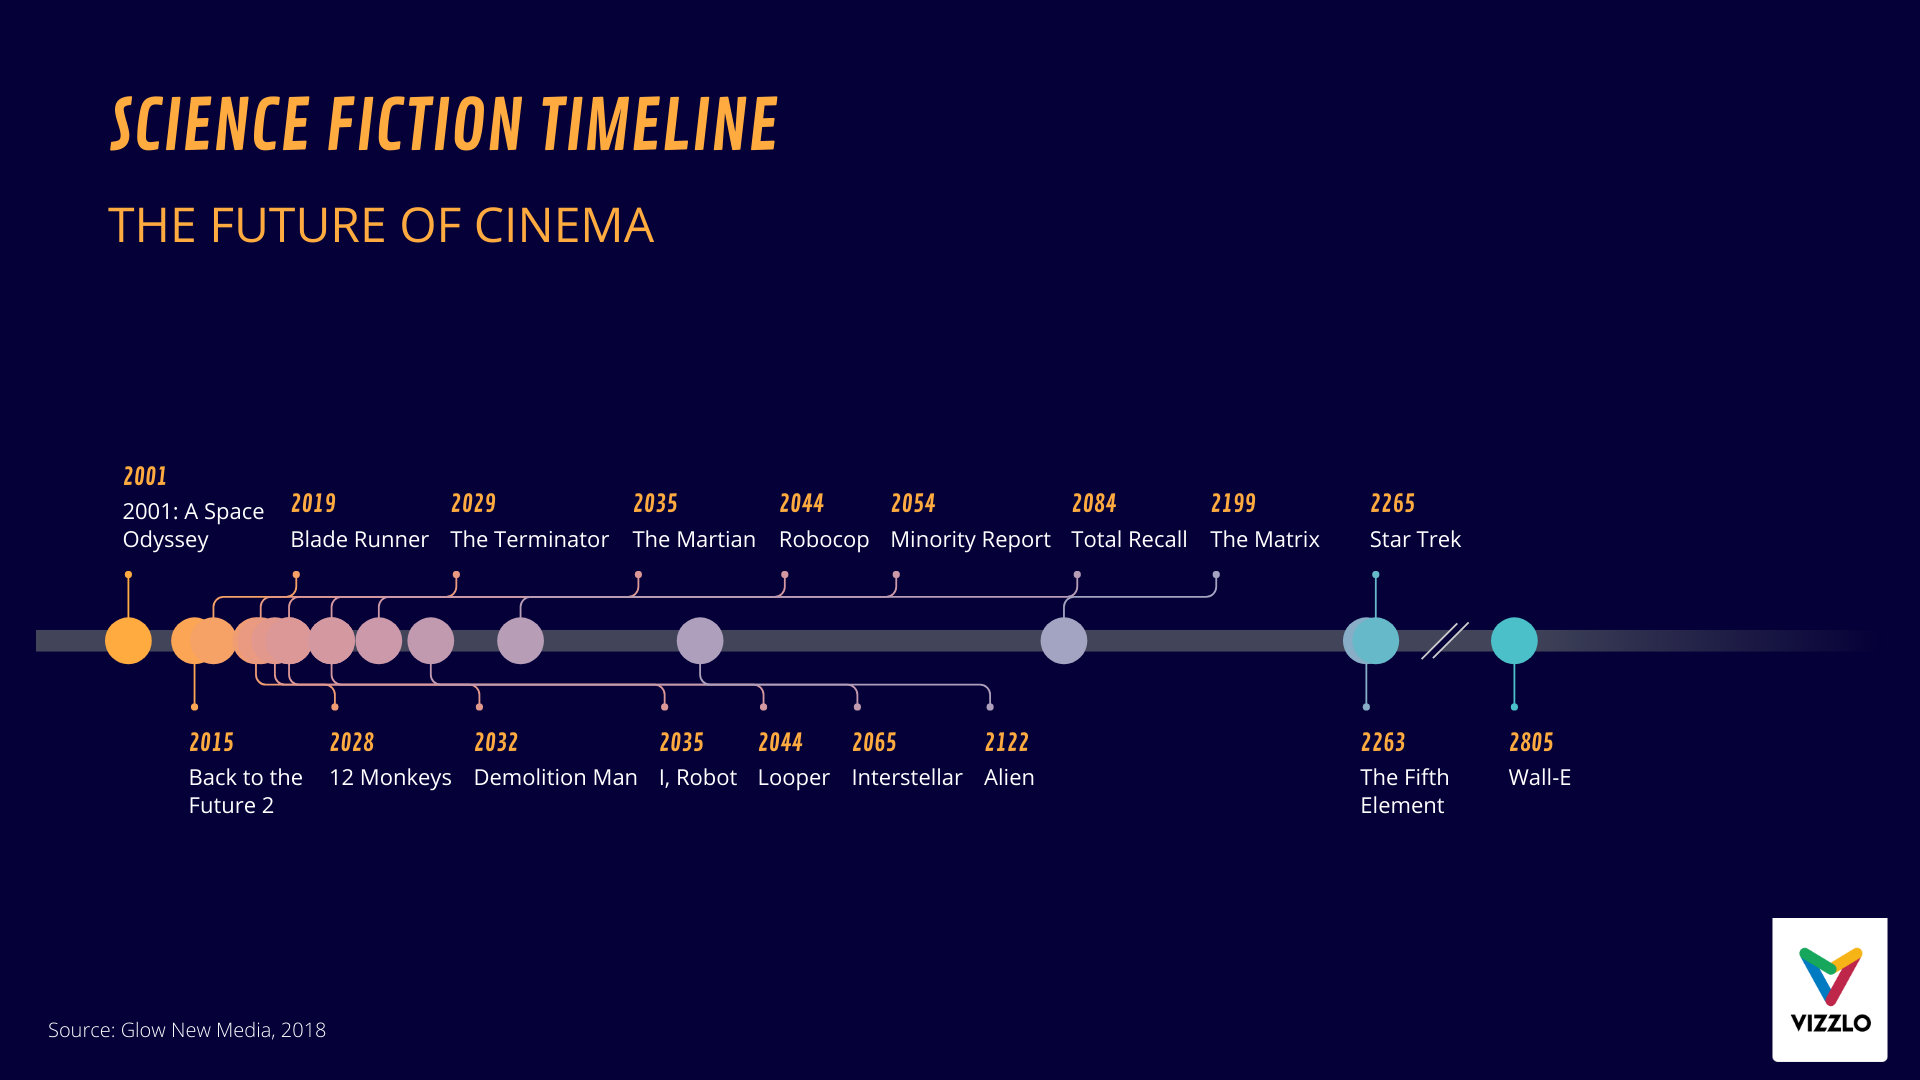 science fiction timeline  timeline chart example   u2014 vizzlo